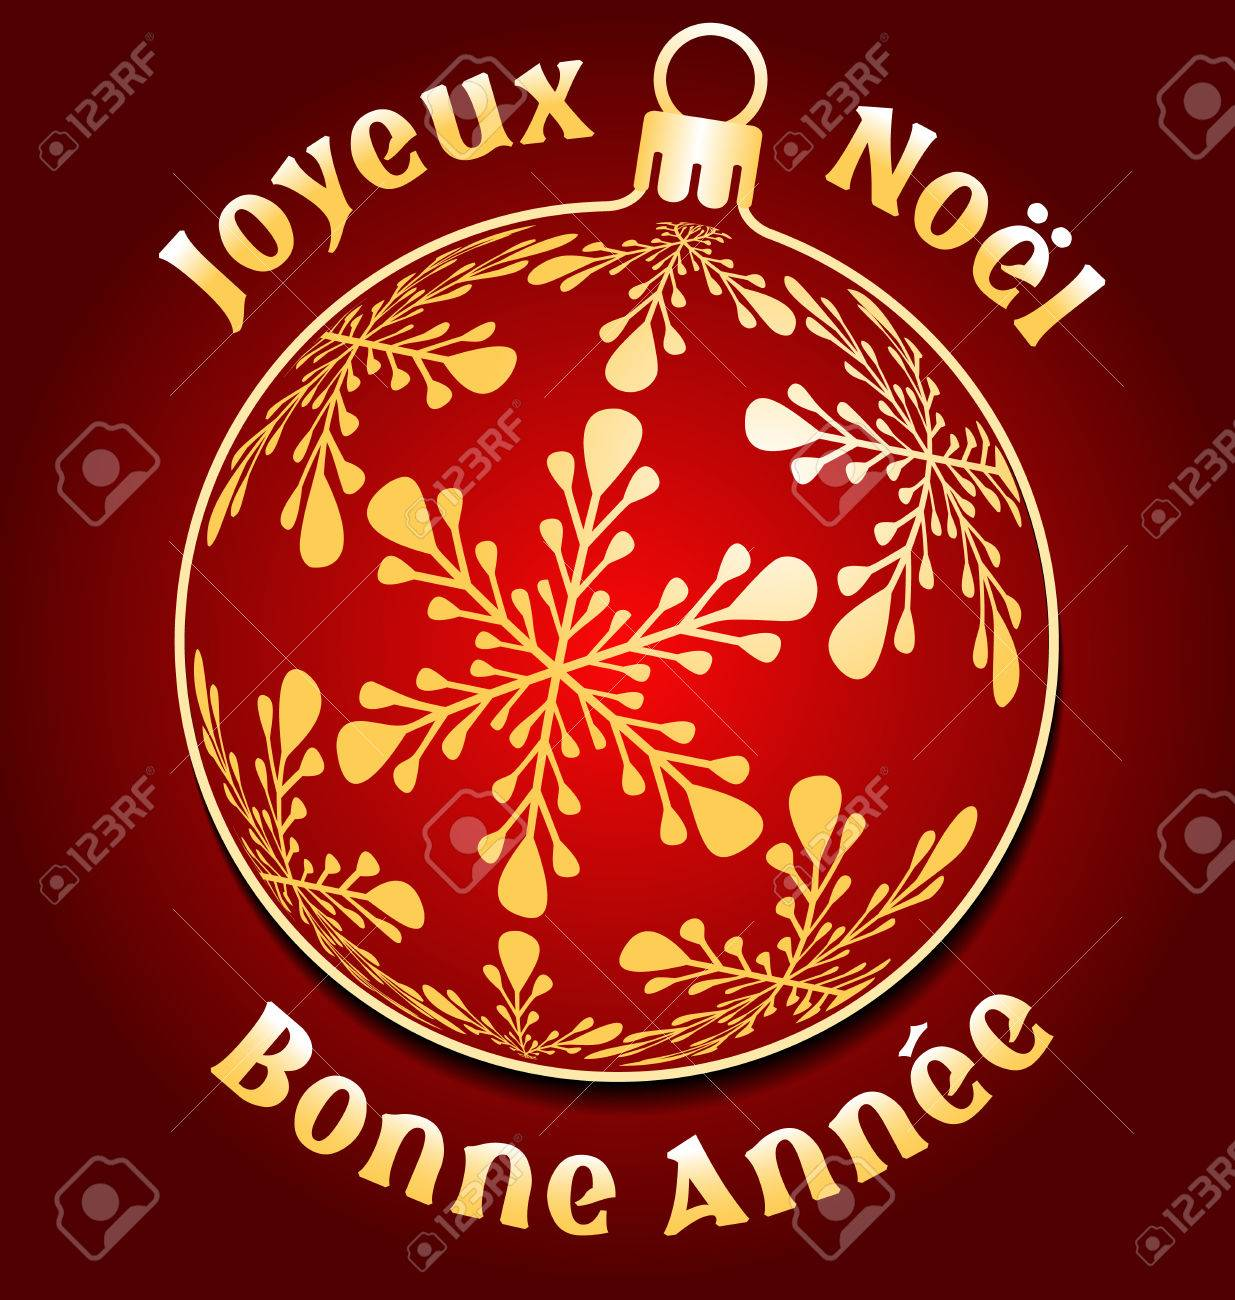 French merry christmas and happy new year background france french merry christmas and happy new year background france holiday greeting card or design element m4hsunfo